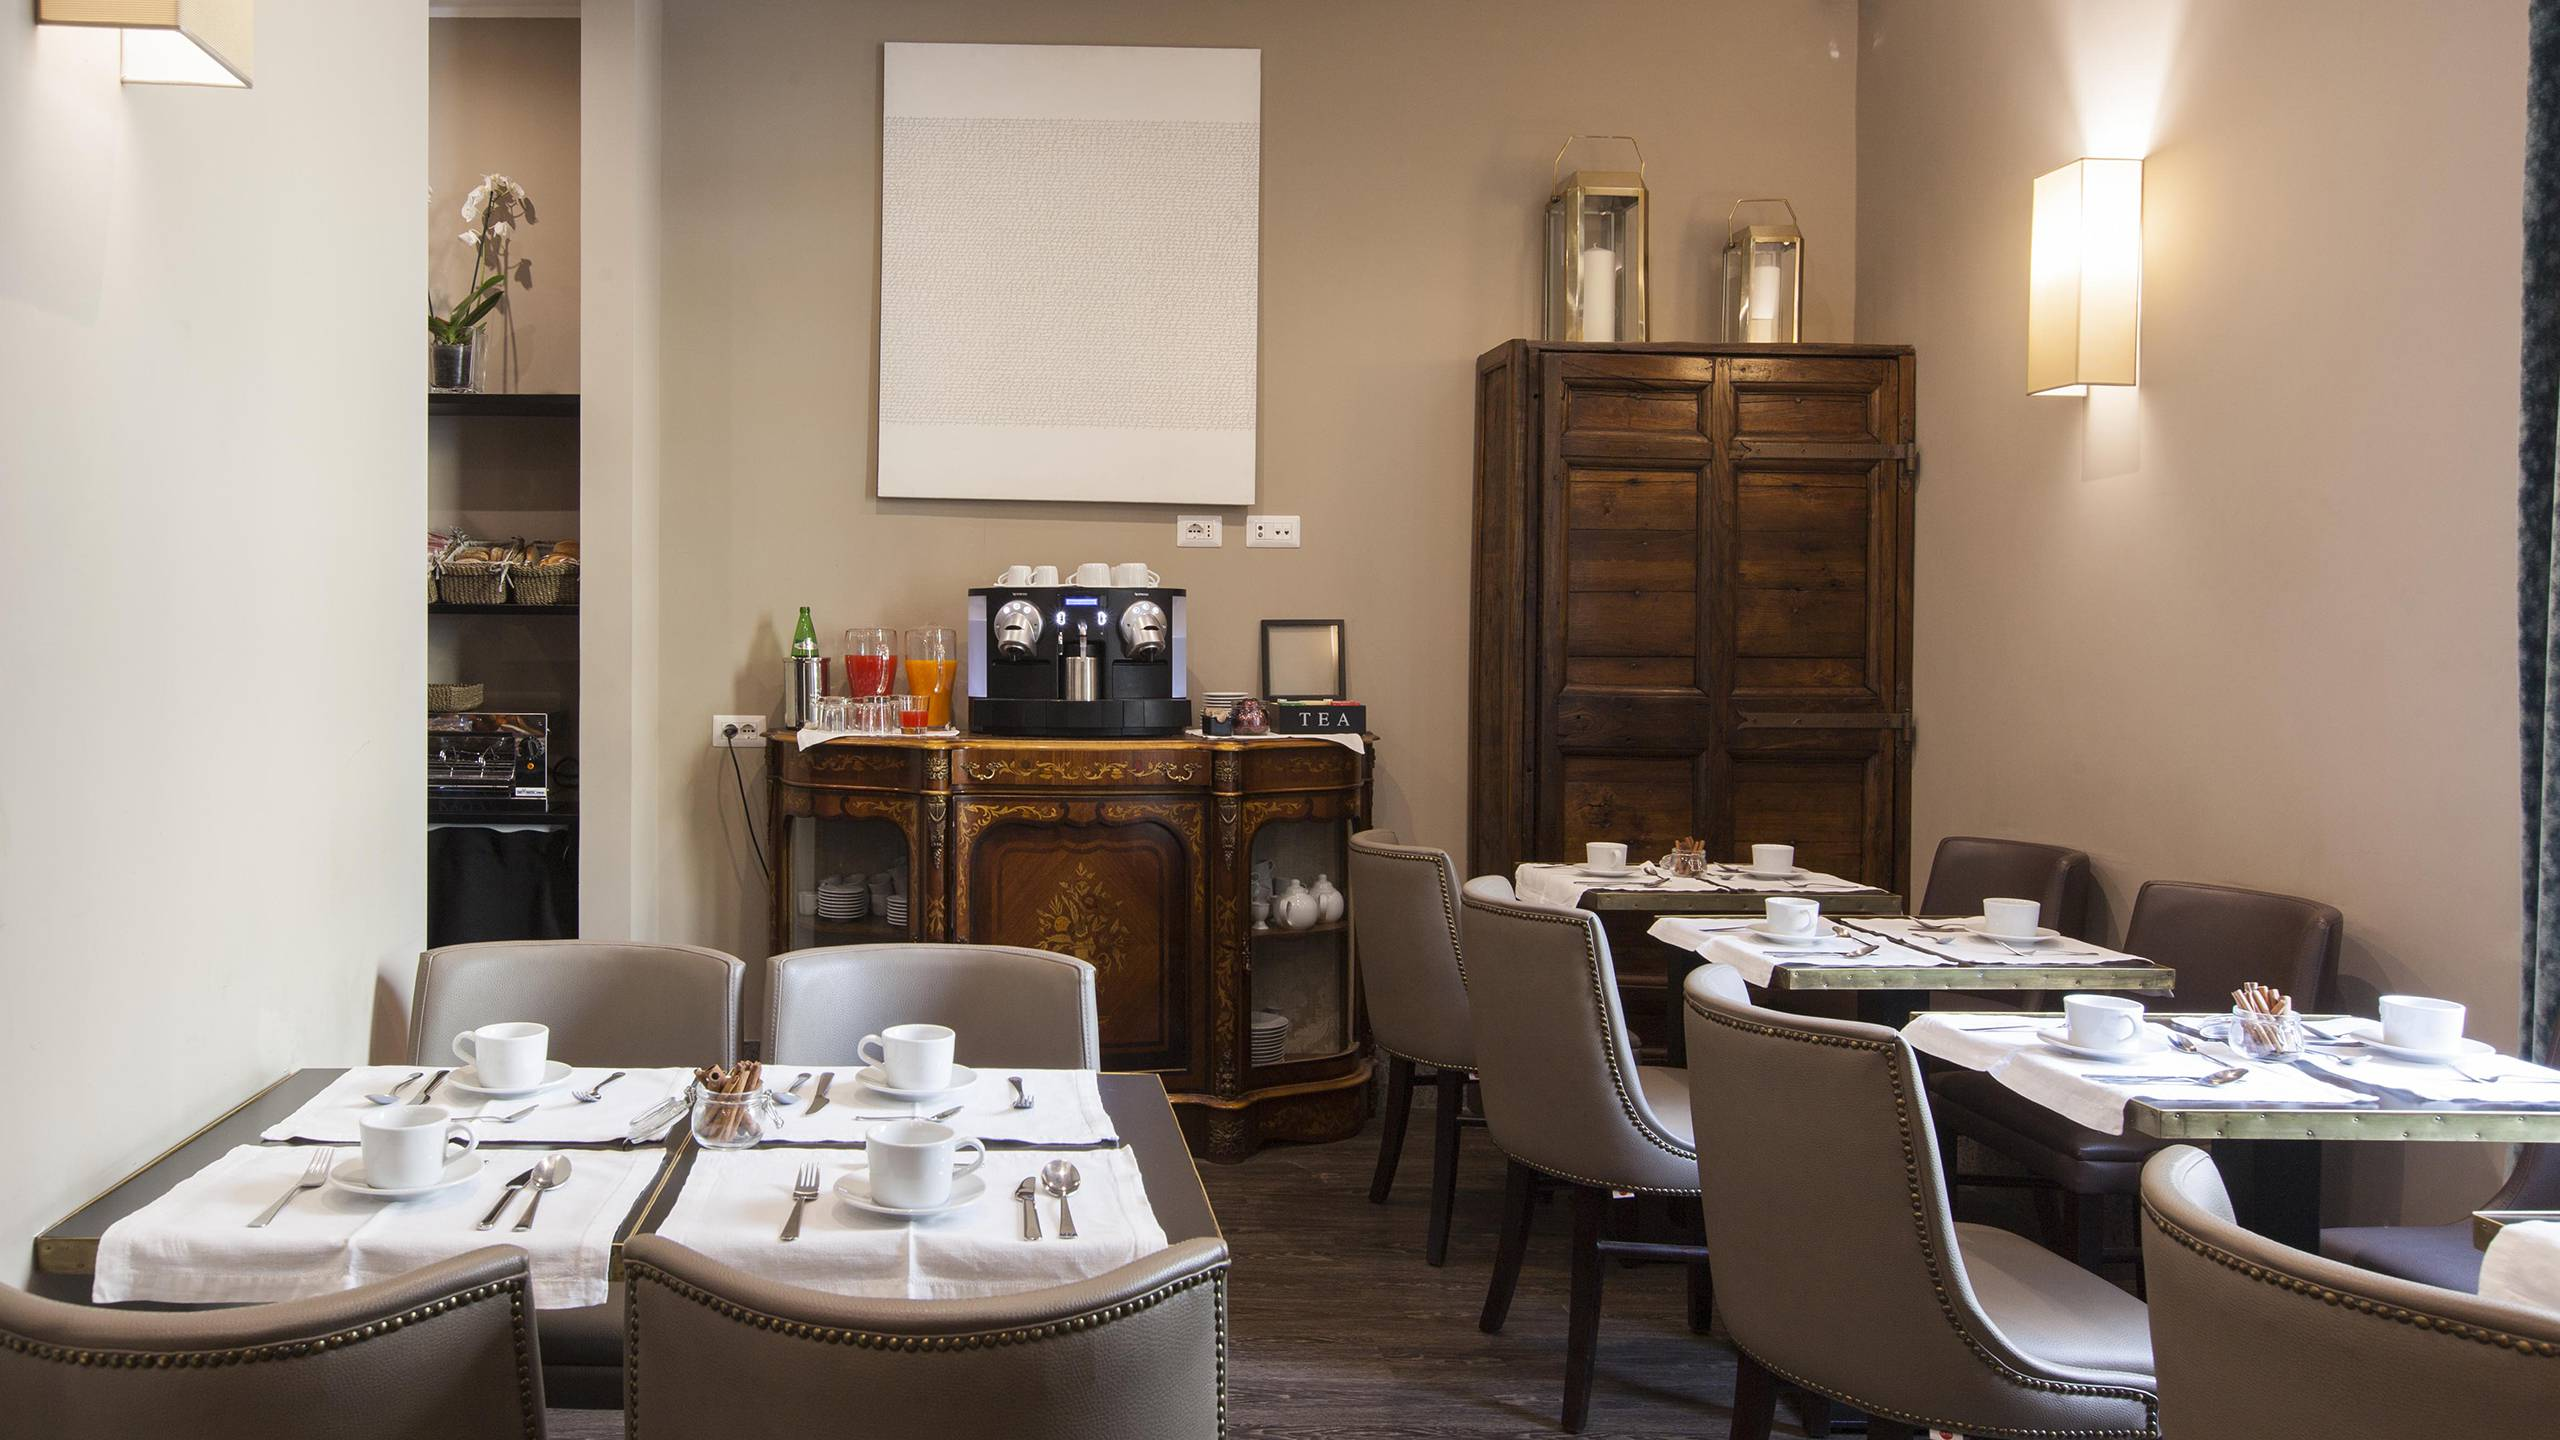 gh-collection-rome-breakfast-room-9-3885